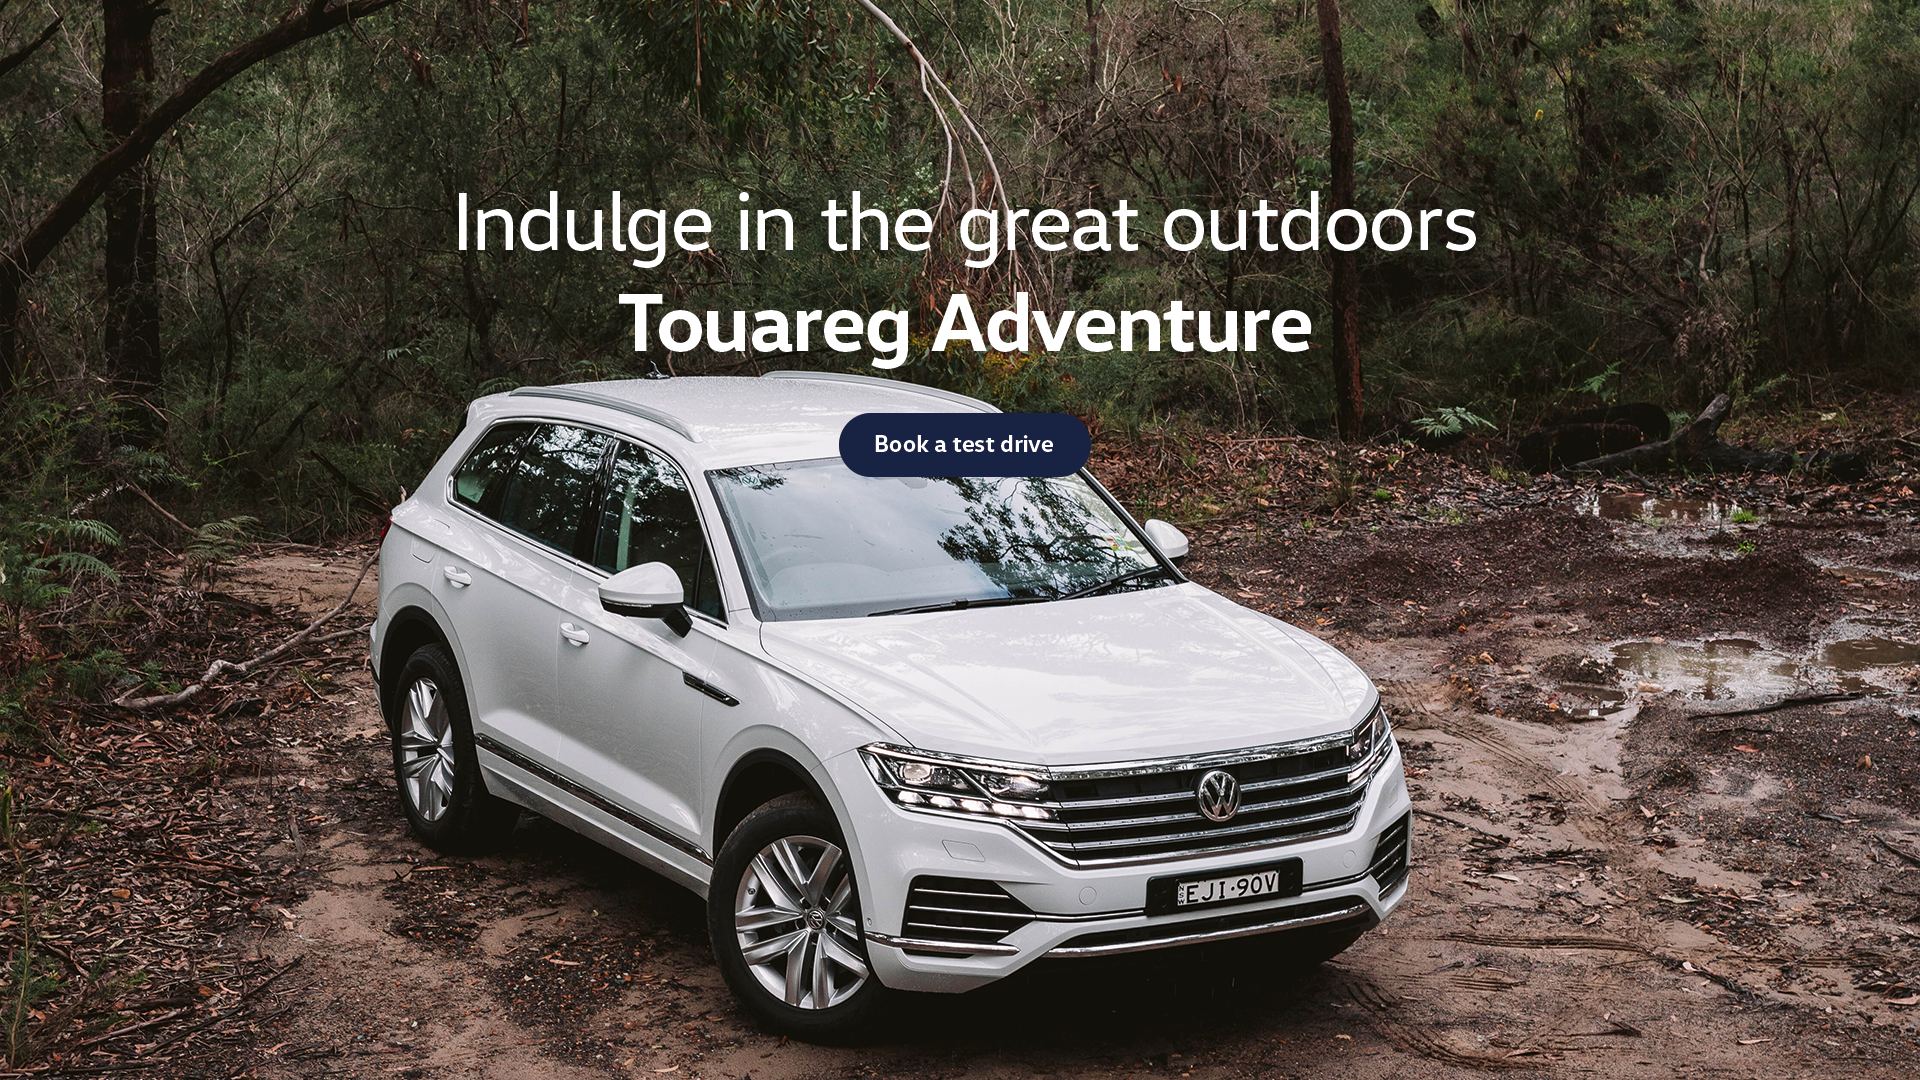 Volkswagen Touareg Adventure. Indulge in the great outdoors. Test drive today